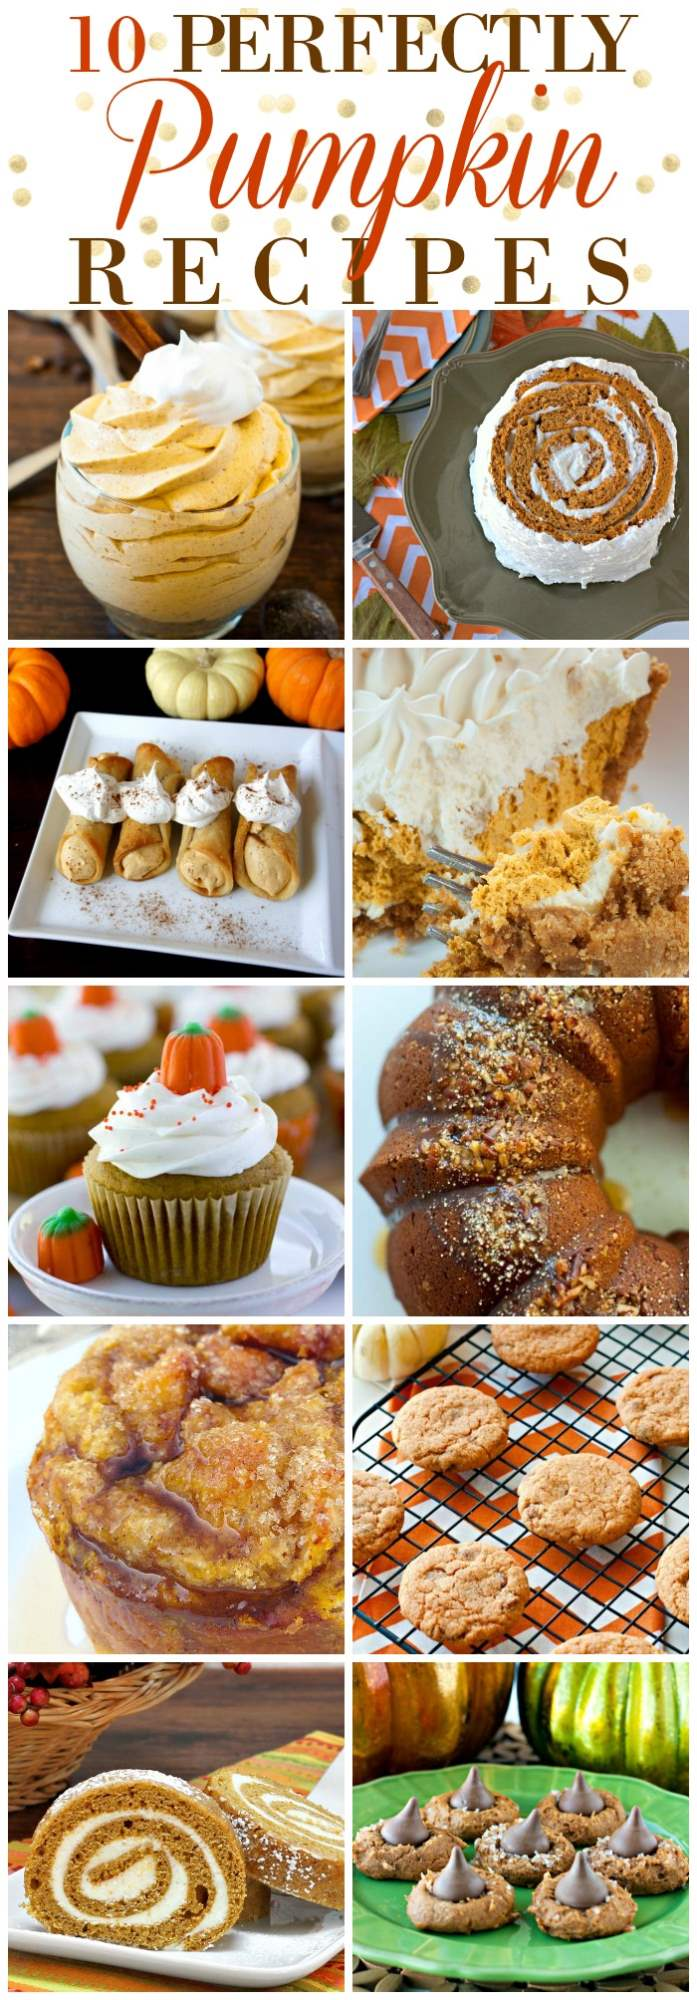 10 Perfectly Pumpkin Recipes 1-Optimized